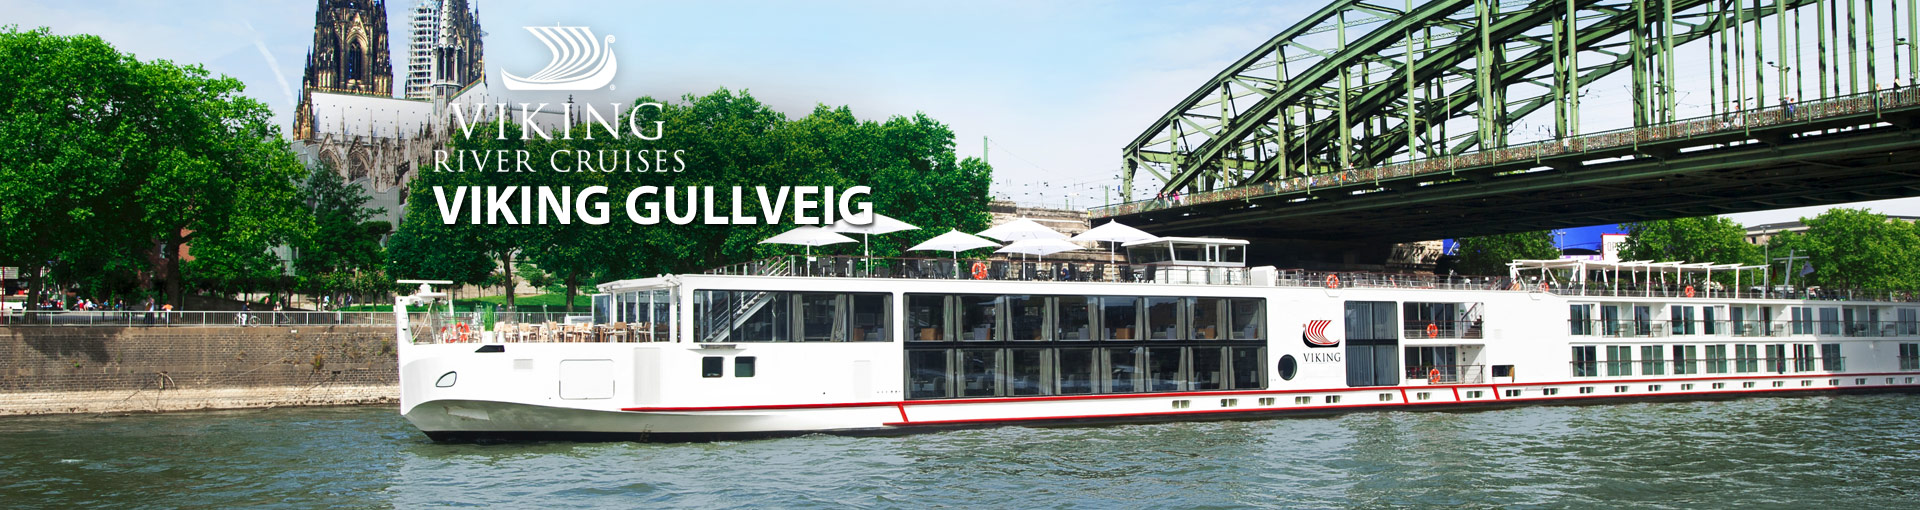 Viking Rivers Viking Gullveig river cruise ship